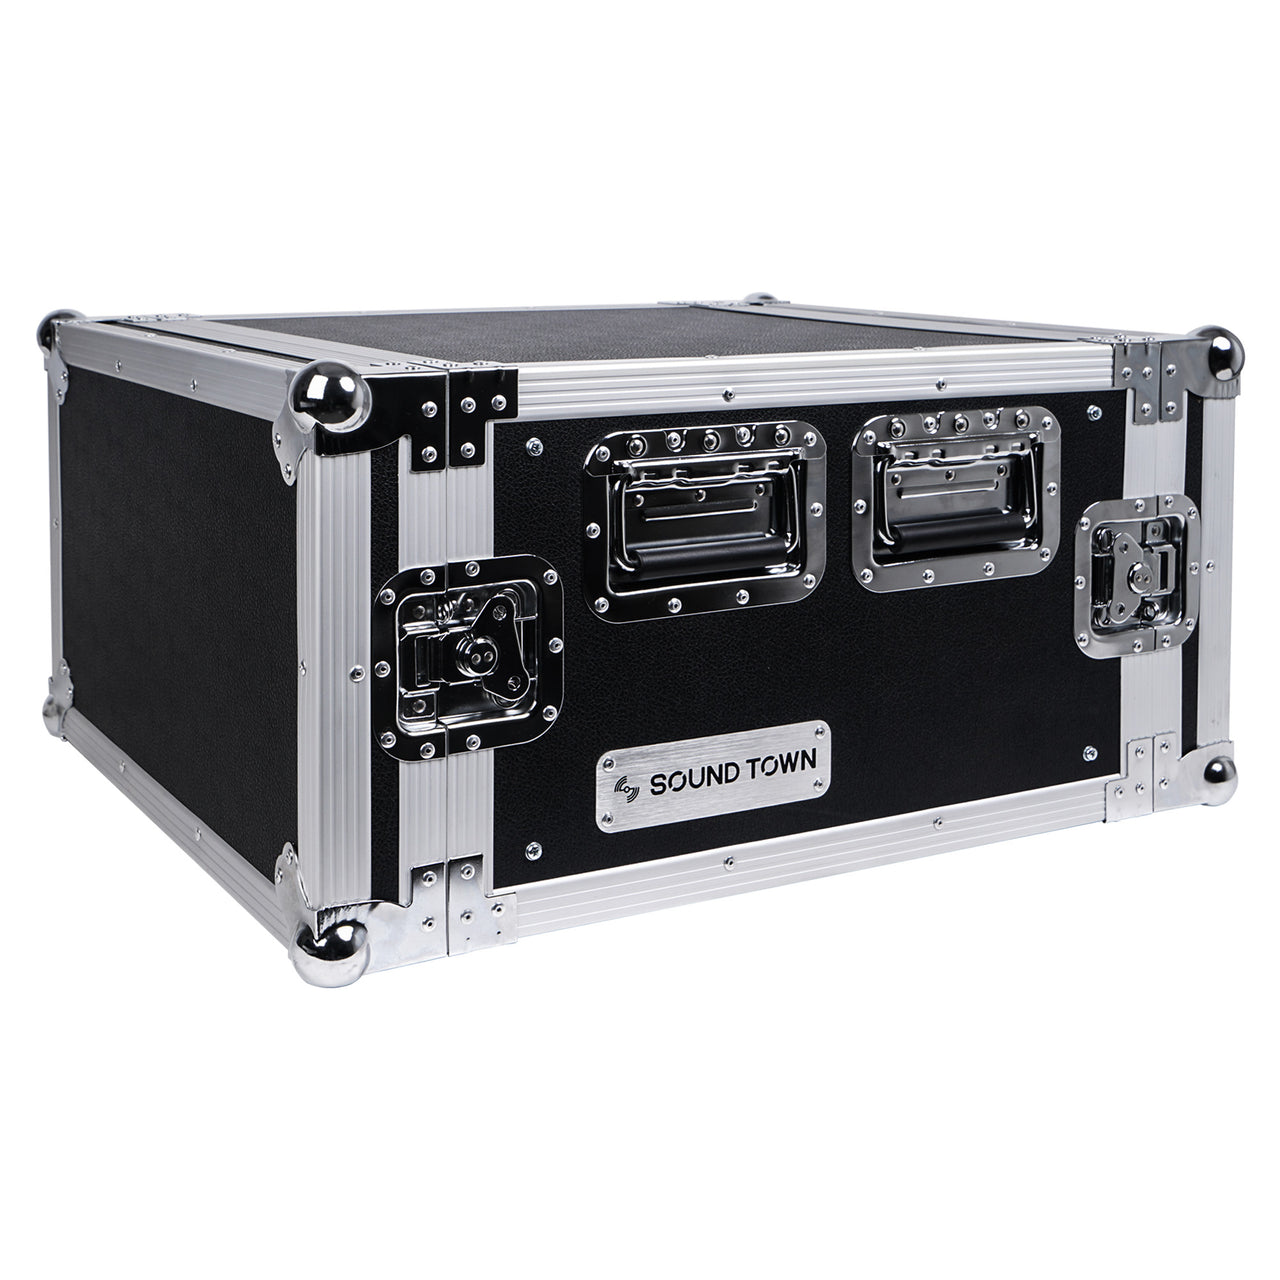 "Sound Town STRC-6U 6U (6 Space) PA DJ Rack Road Flight Case with 17"" Depth, Plywood, Metal Ball Corners - Right Panel"